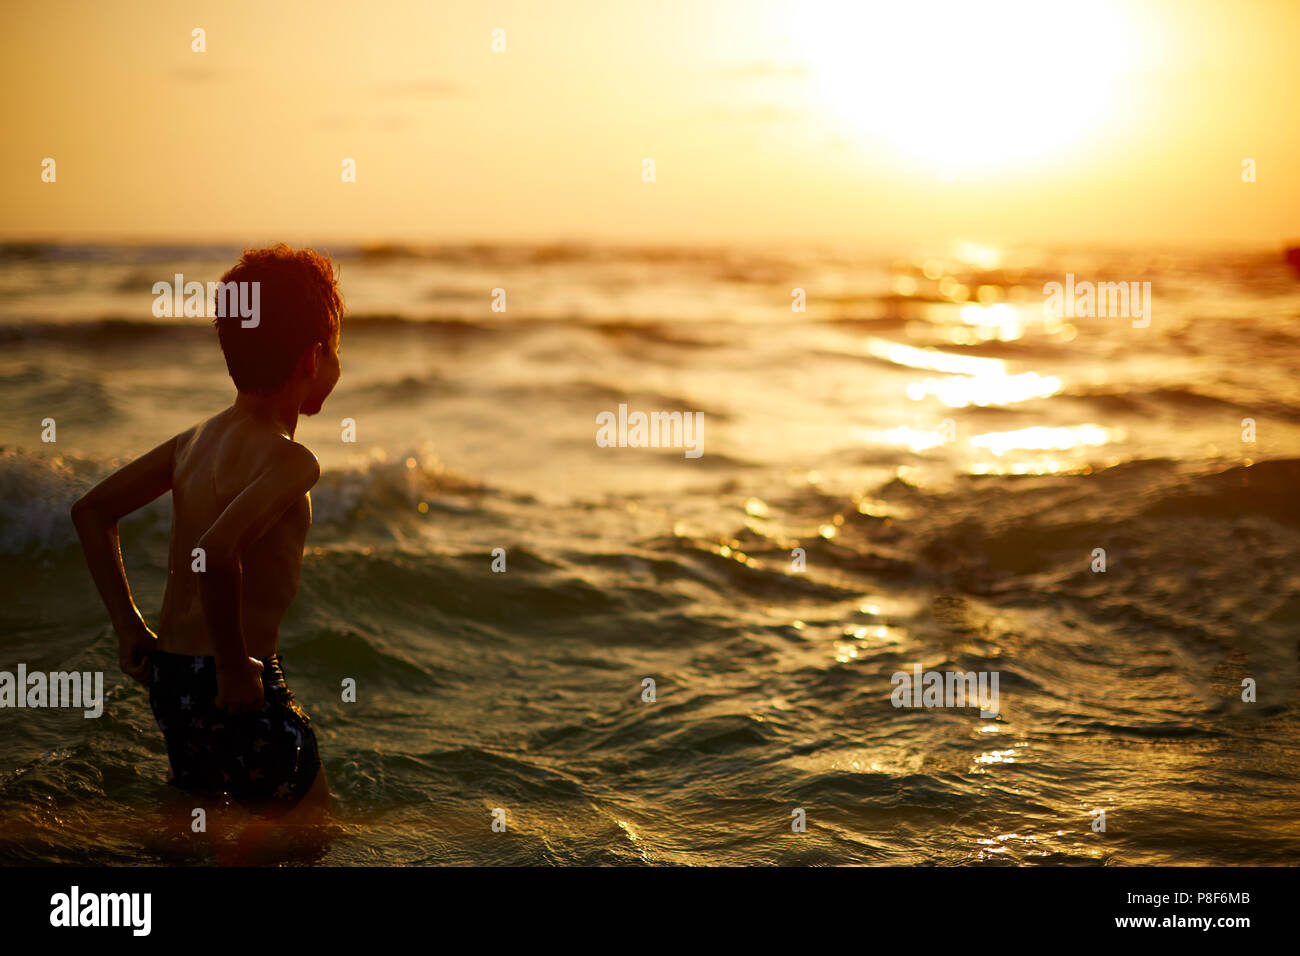 Boy looking out towards the sunset with the waves on there way in. - Stock Image